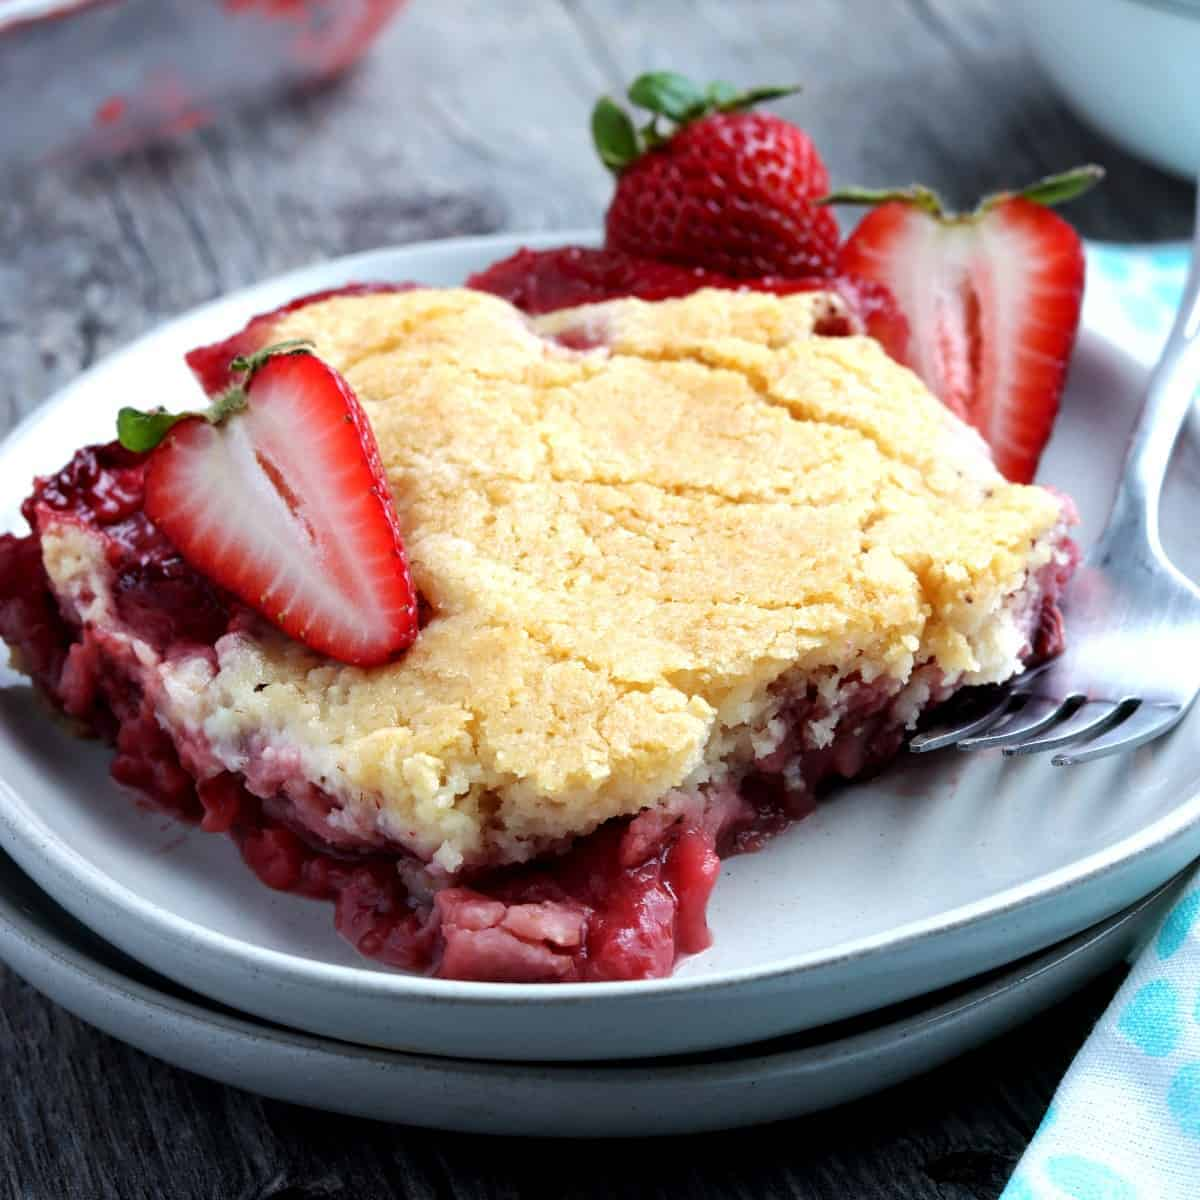 One generous square piece of strawberry cobbler on a serving plate.